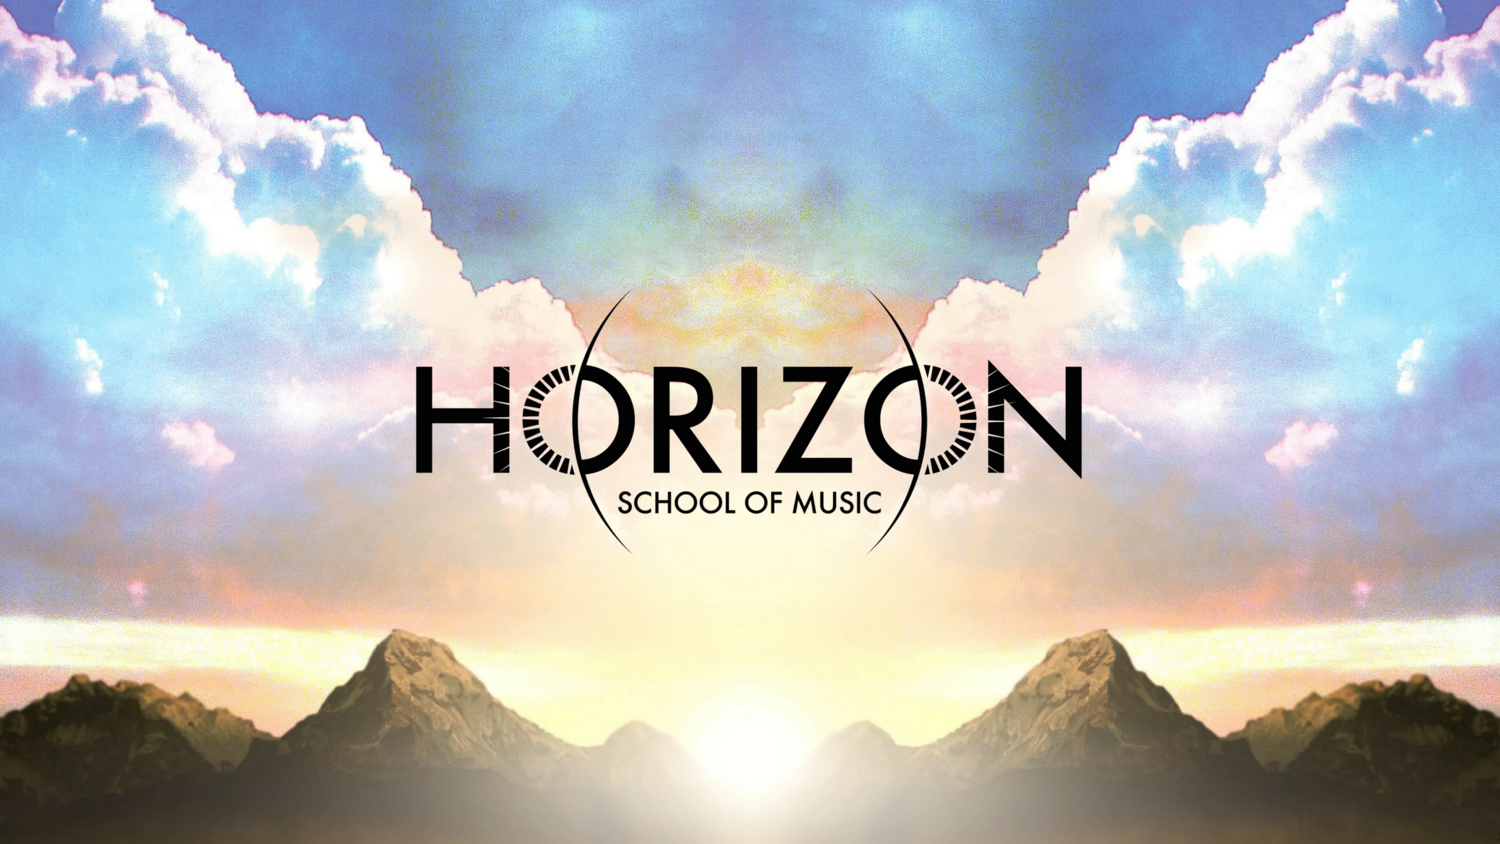 Horizon School of Music